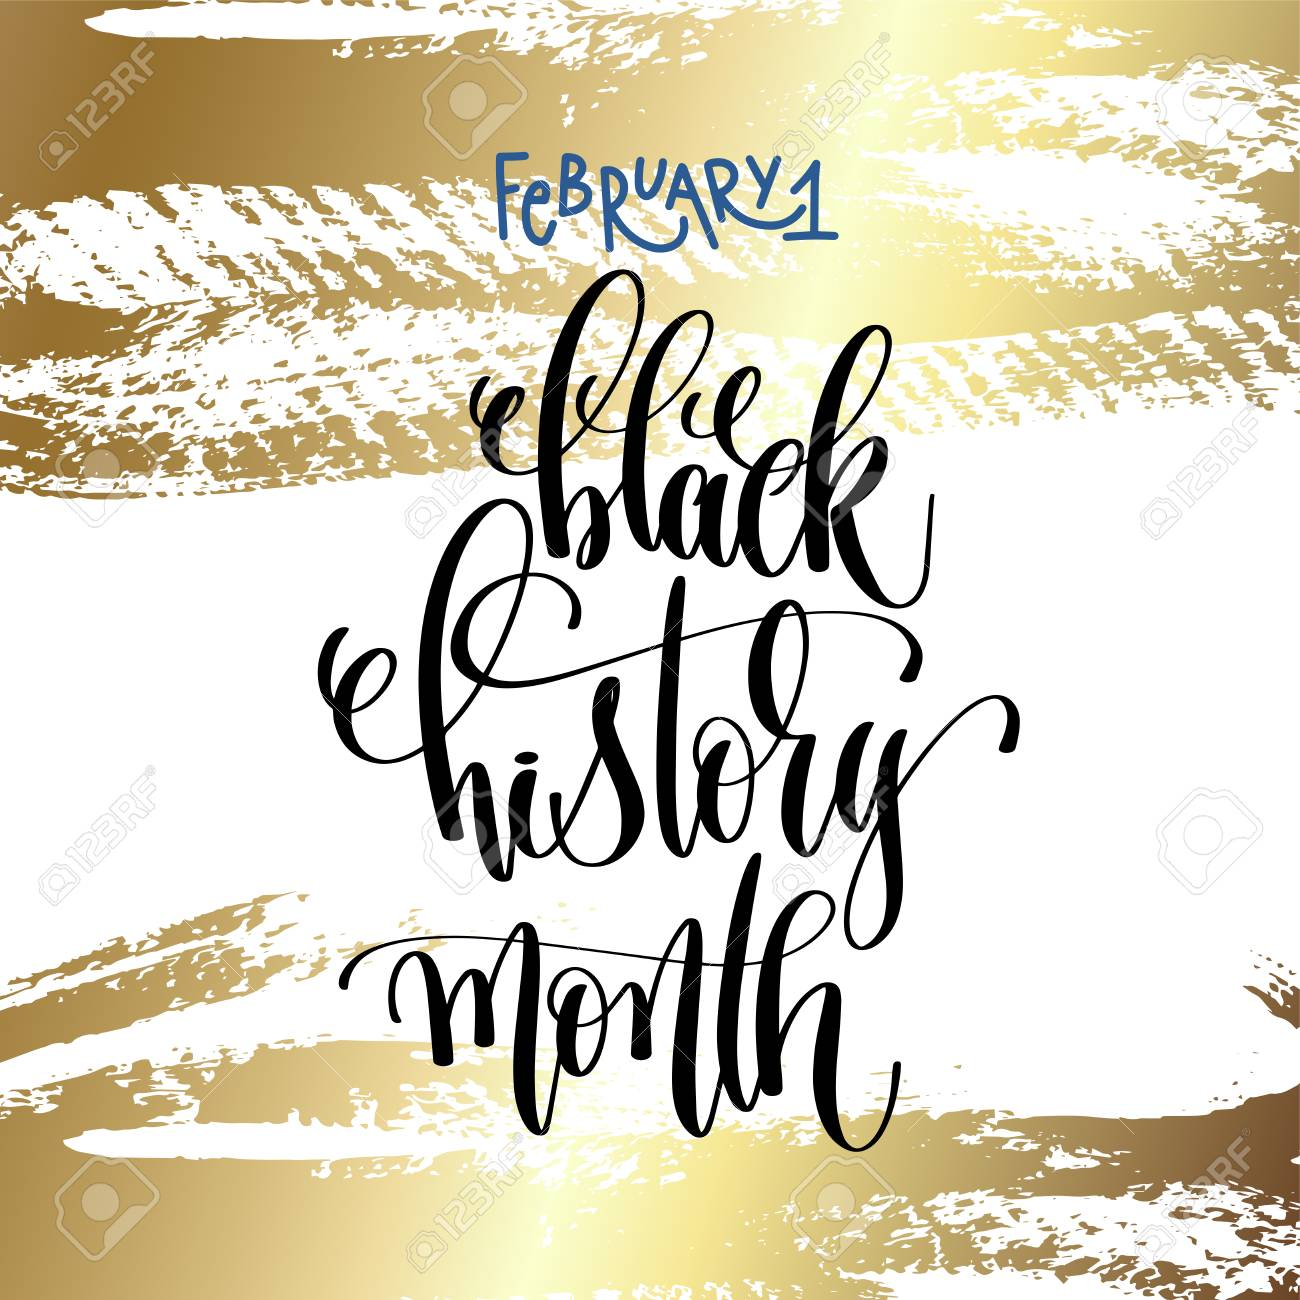 February 1 Black History Month Hand Lettering Inscription Royalty Free Cliparts Vectors And Stock Illustration Image 92531021